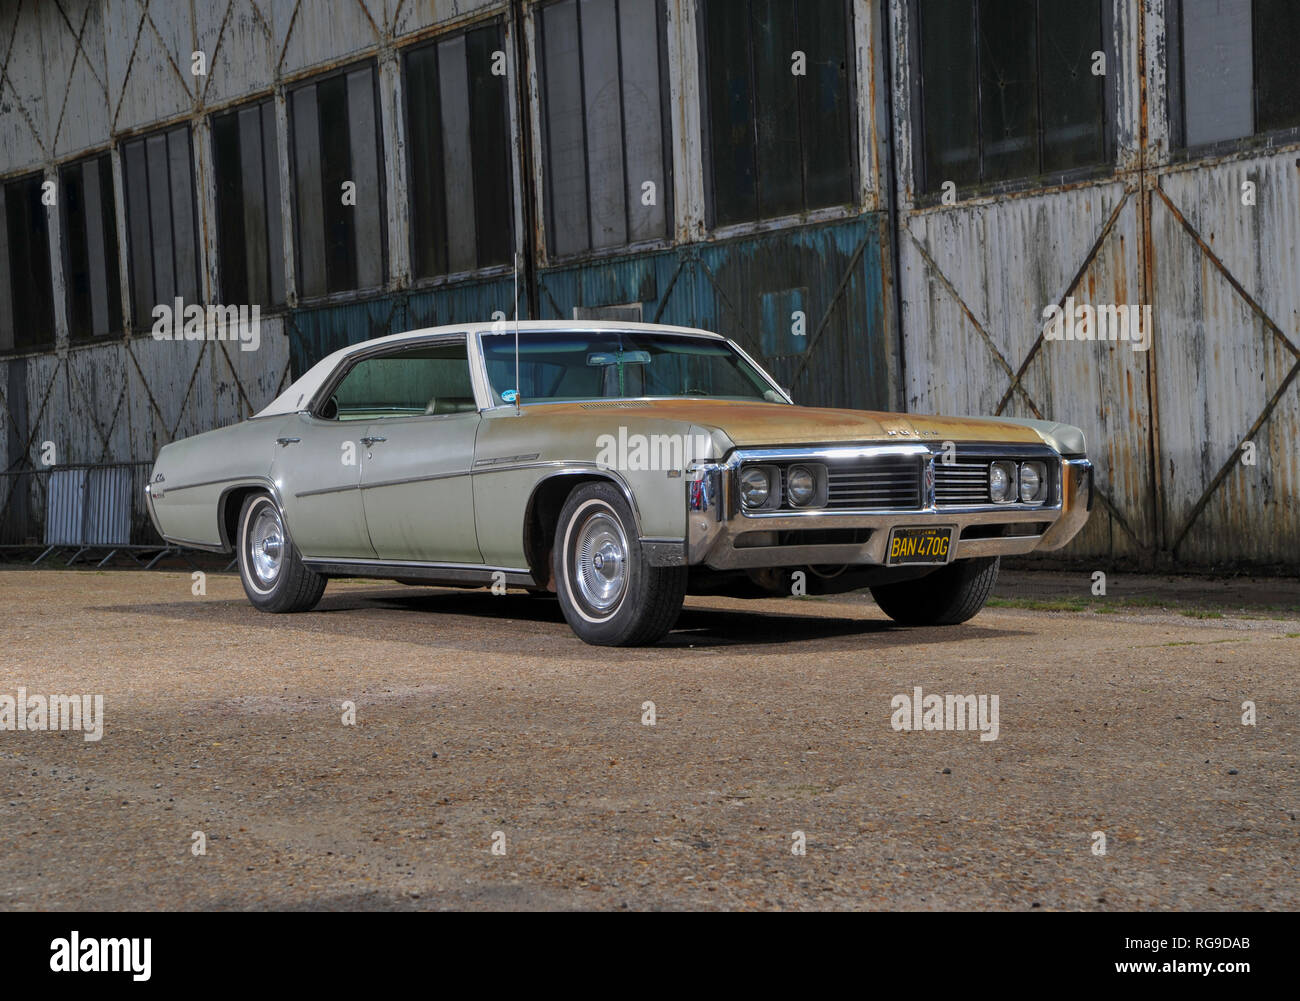 hight resolution of 1969 buick lesabre with sun burnt patina stock image